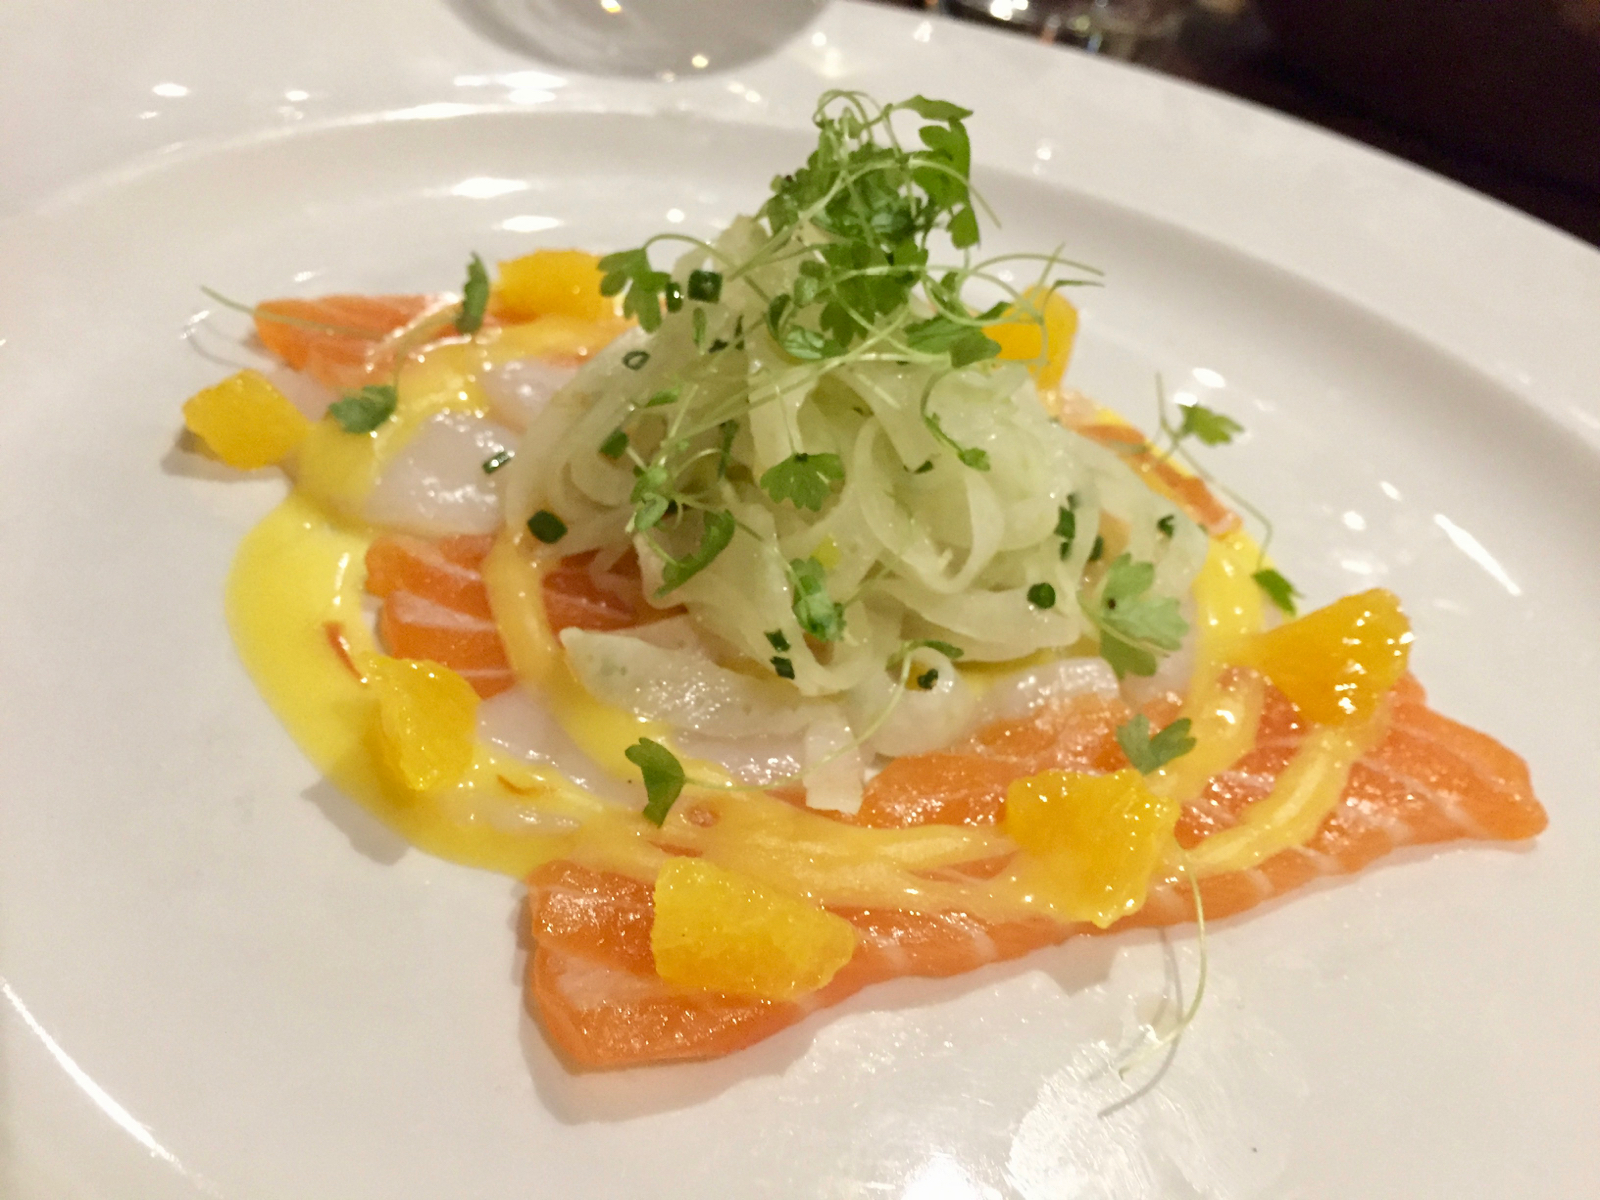 Webbe's at the Fish Cafe - Loch Duart Salmon & Scallop Carpaccio